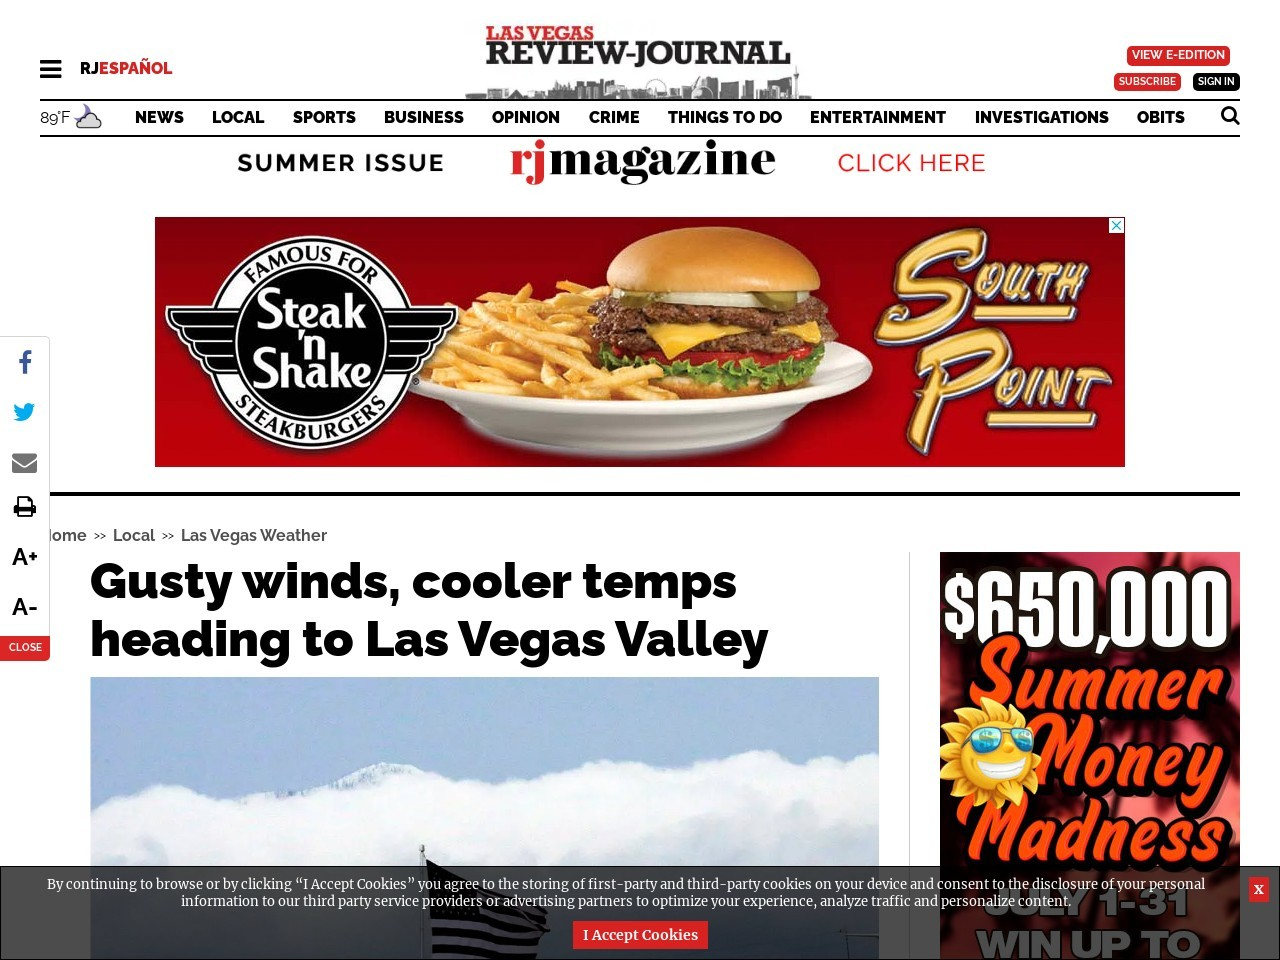 Gusty winds, cooler temps heading to Las Vegas Valley